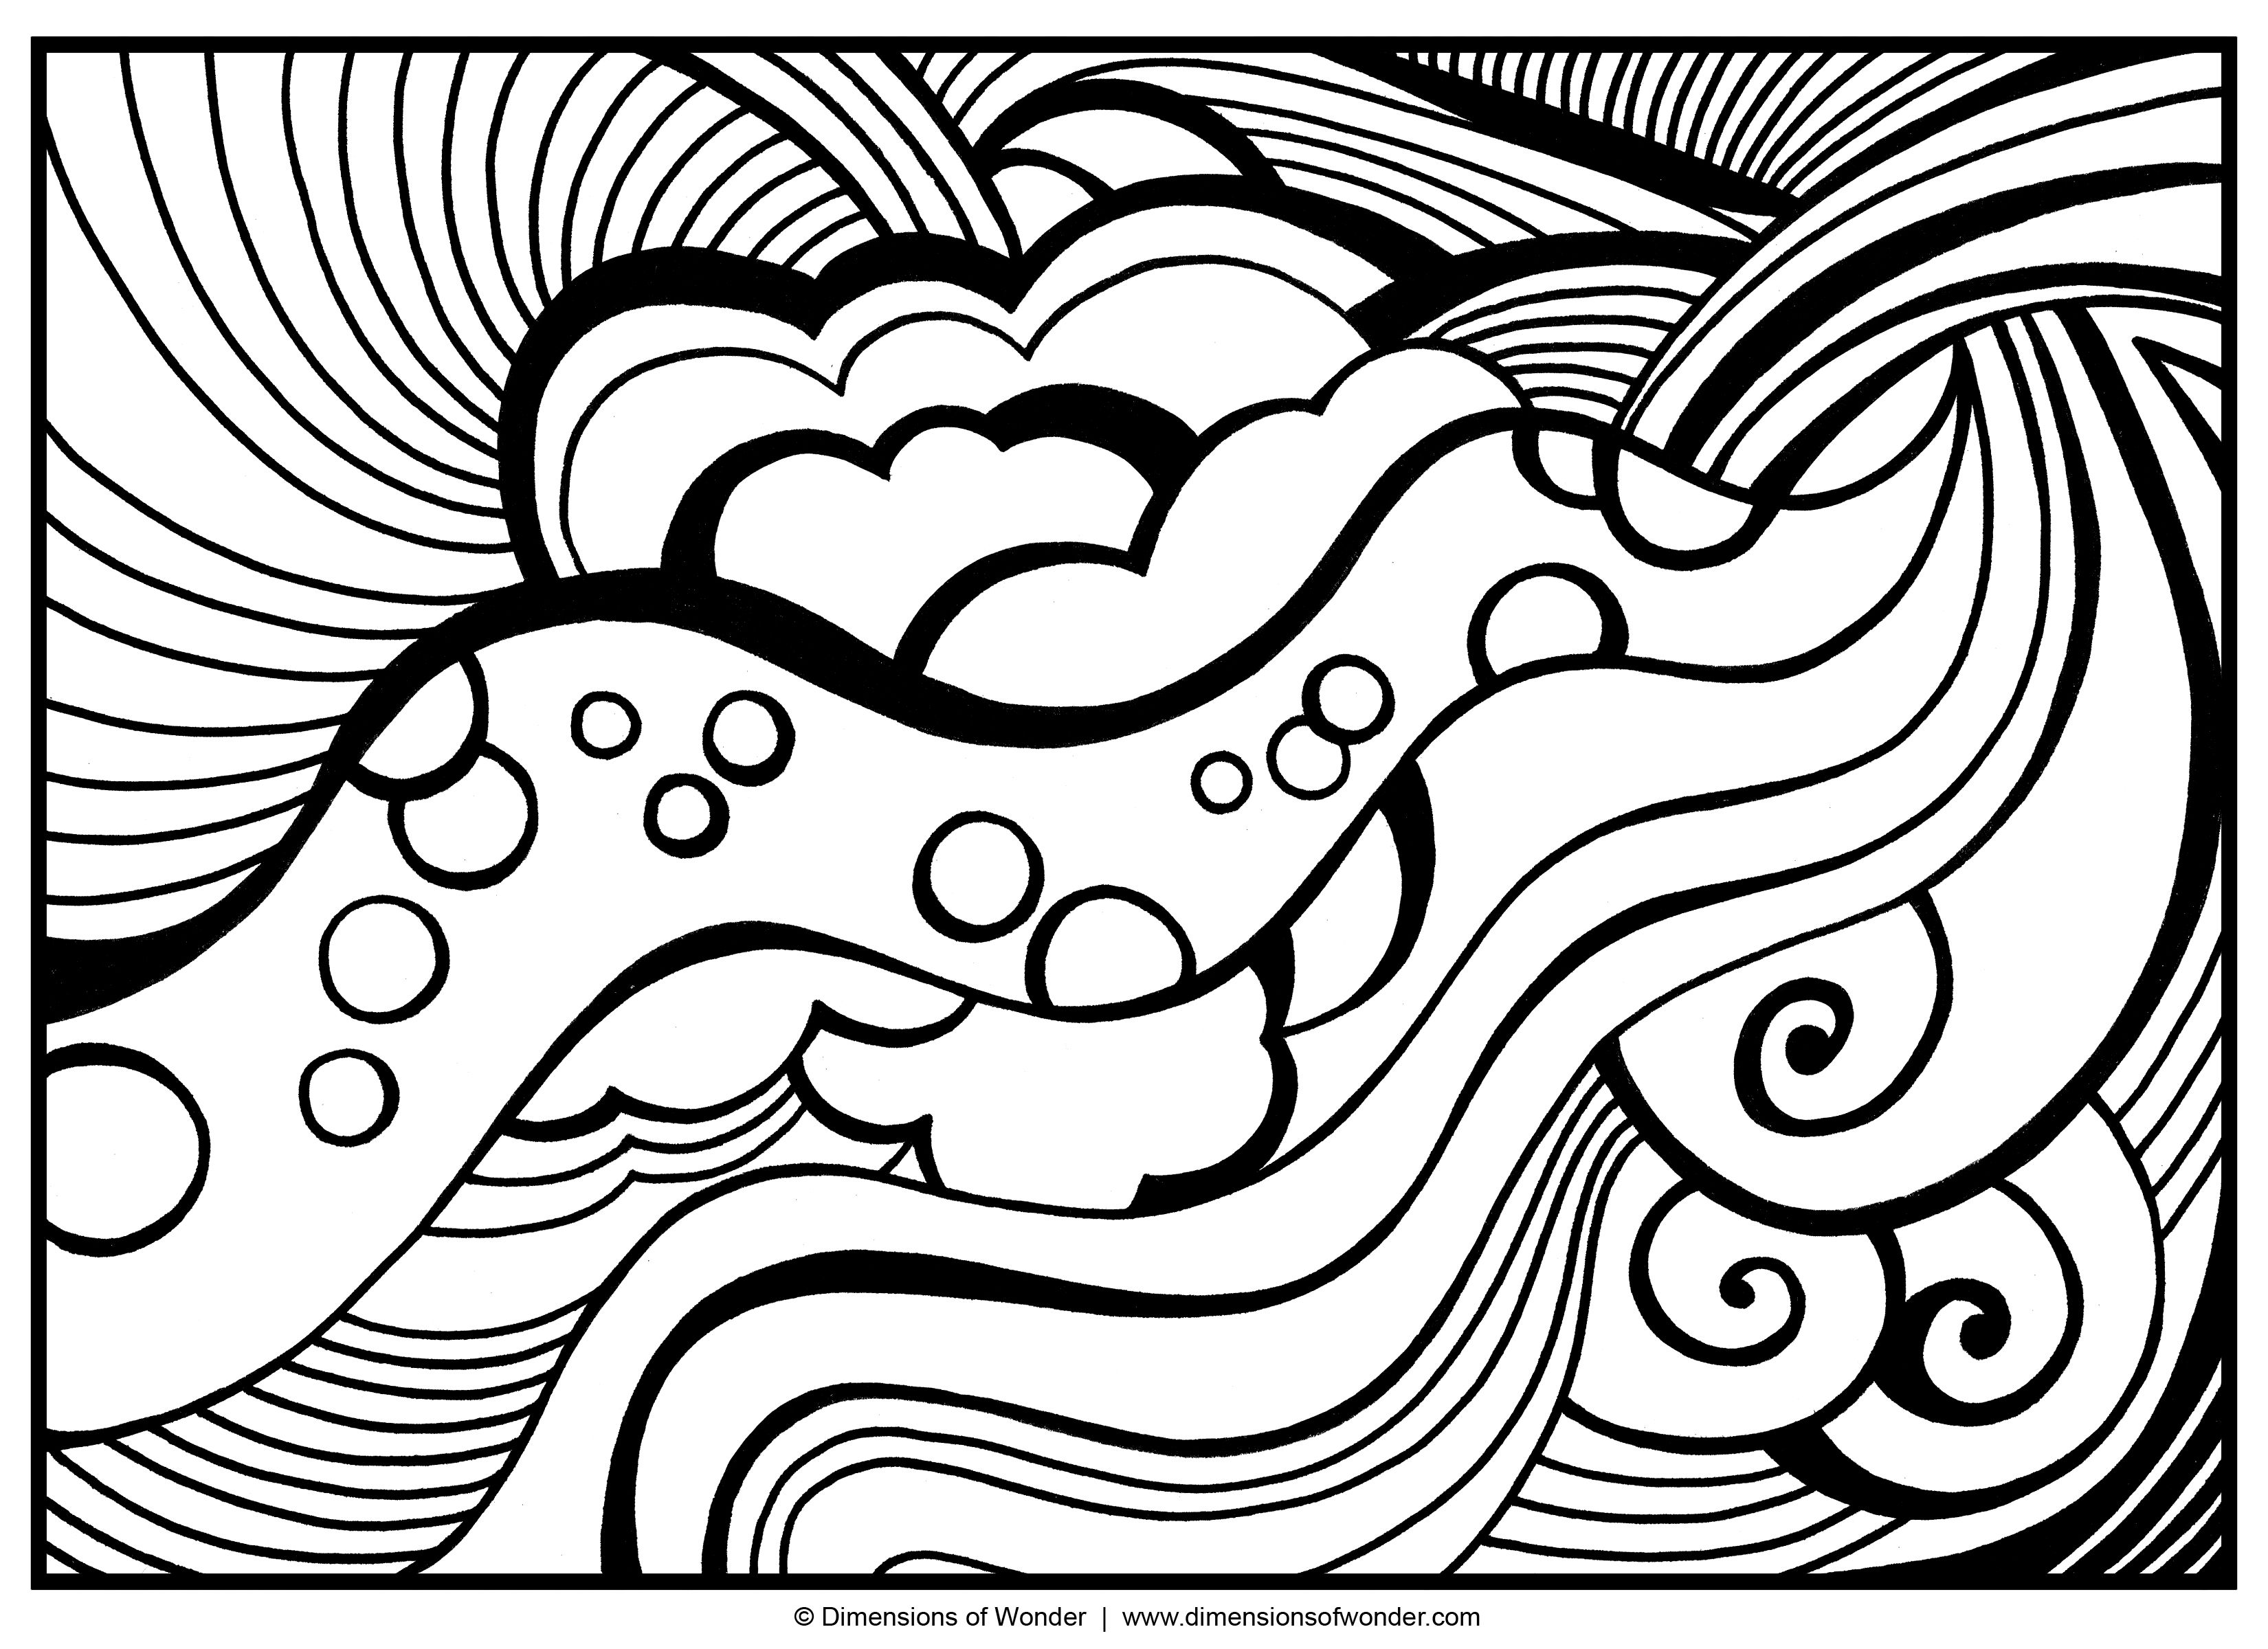 Coloring Pages Large Coloring Pages To Print abstract coloring pages free large images recipes pinterest images